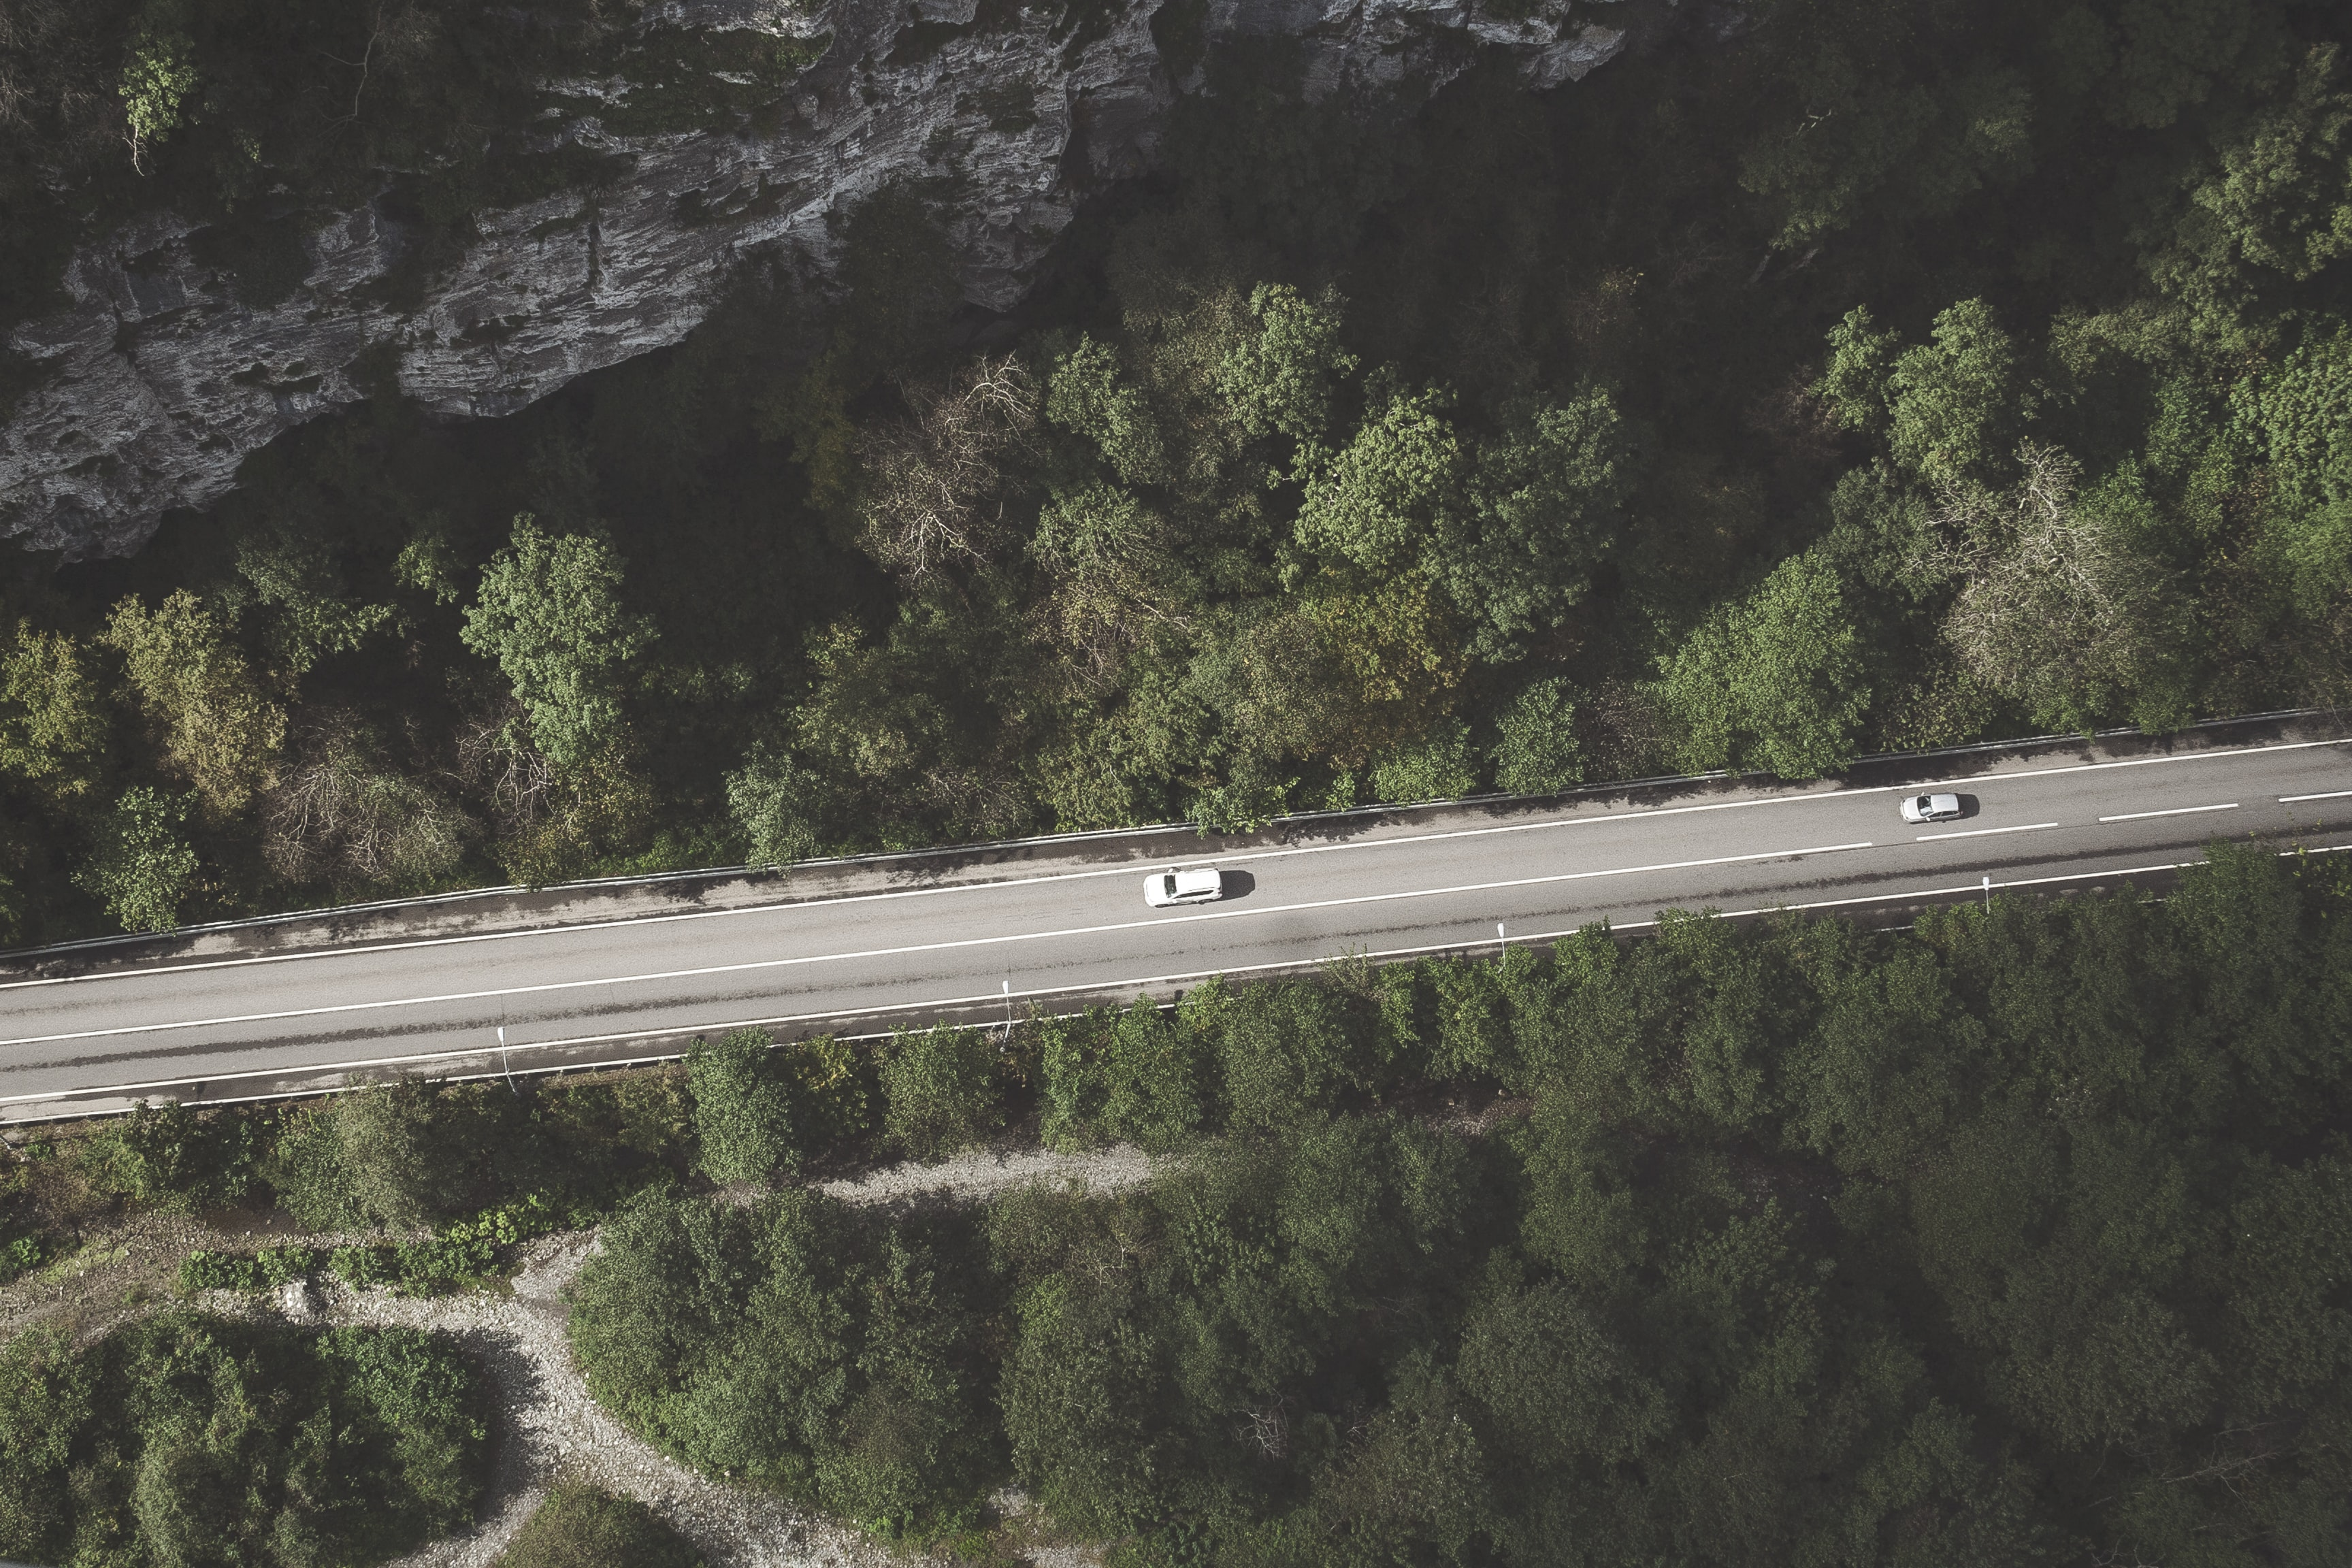 Drone shot of two cars on the highway surrounded by hills.